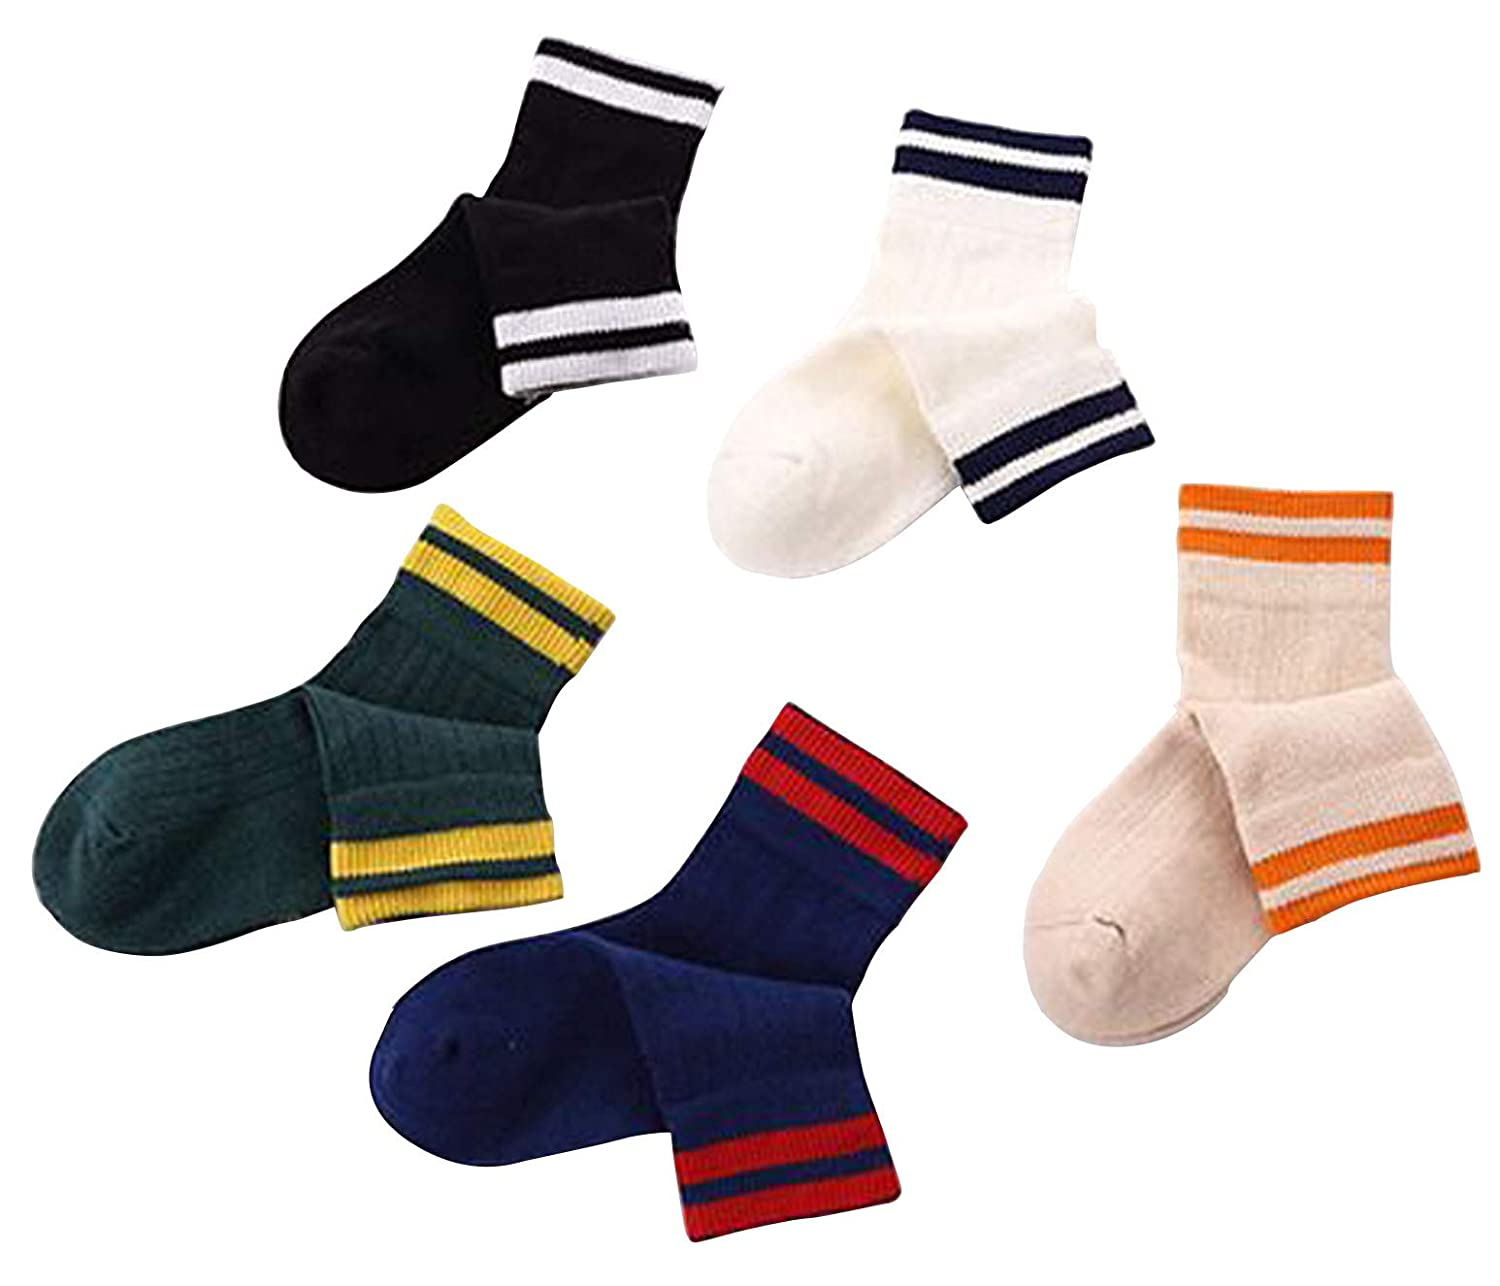 BoXianer Kids Socks Boys Girls Cotton Cute Fun Striped Casual Ankle Childs Socks